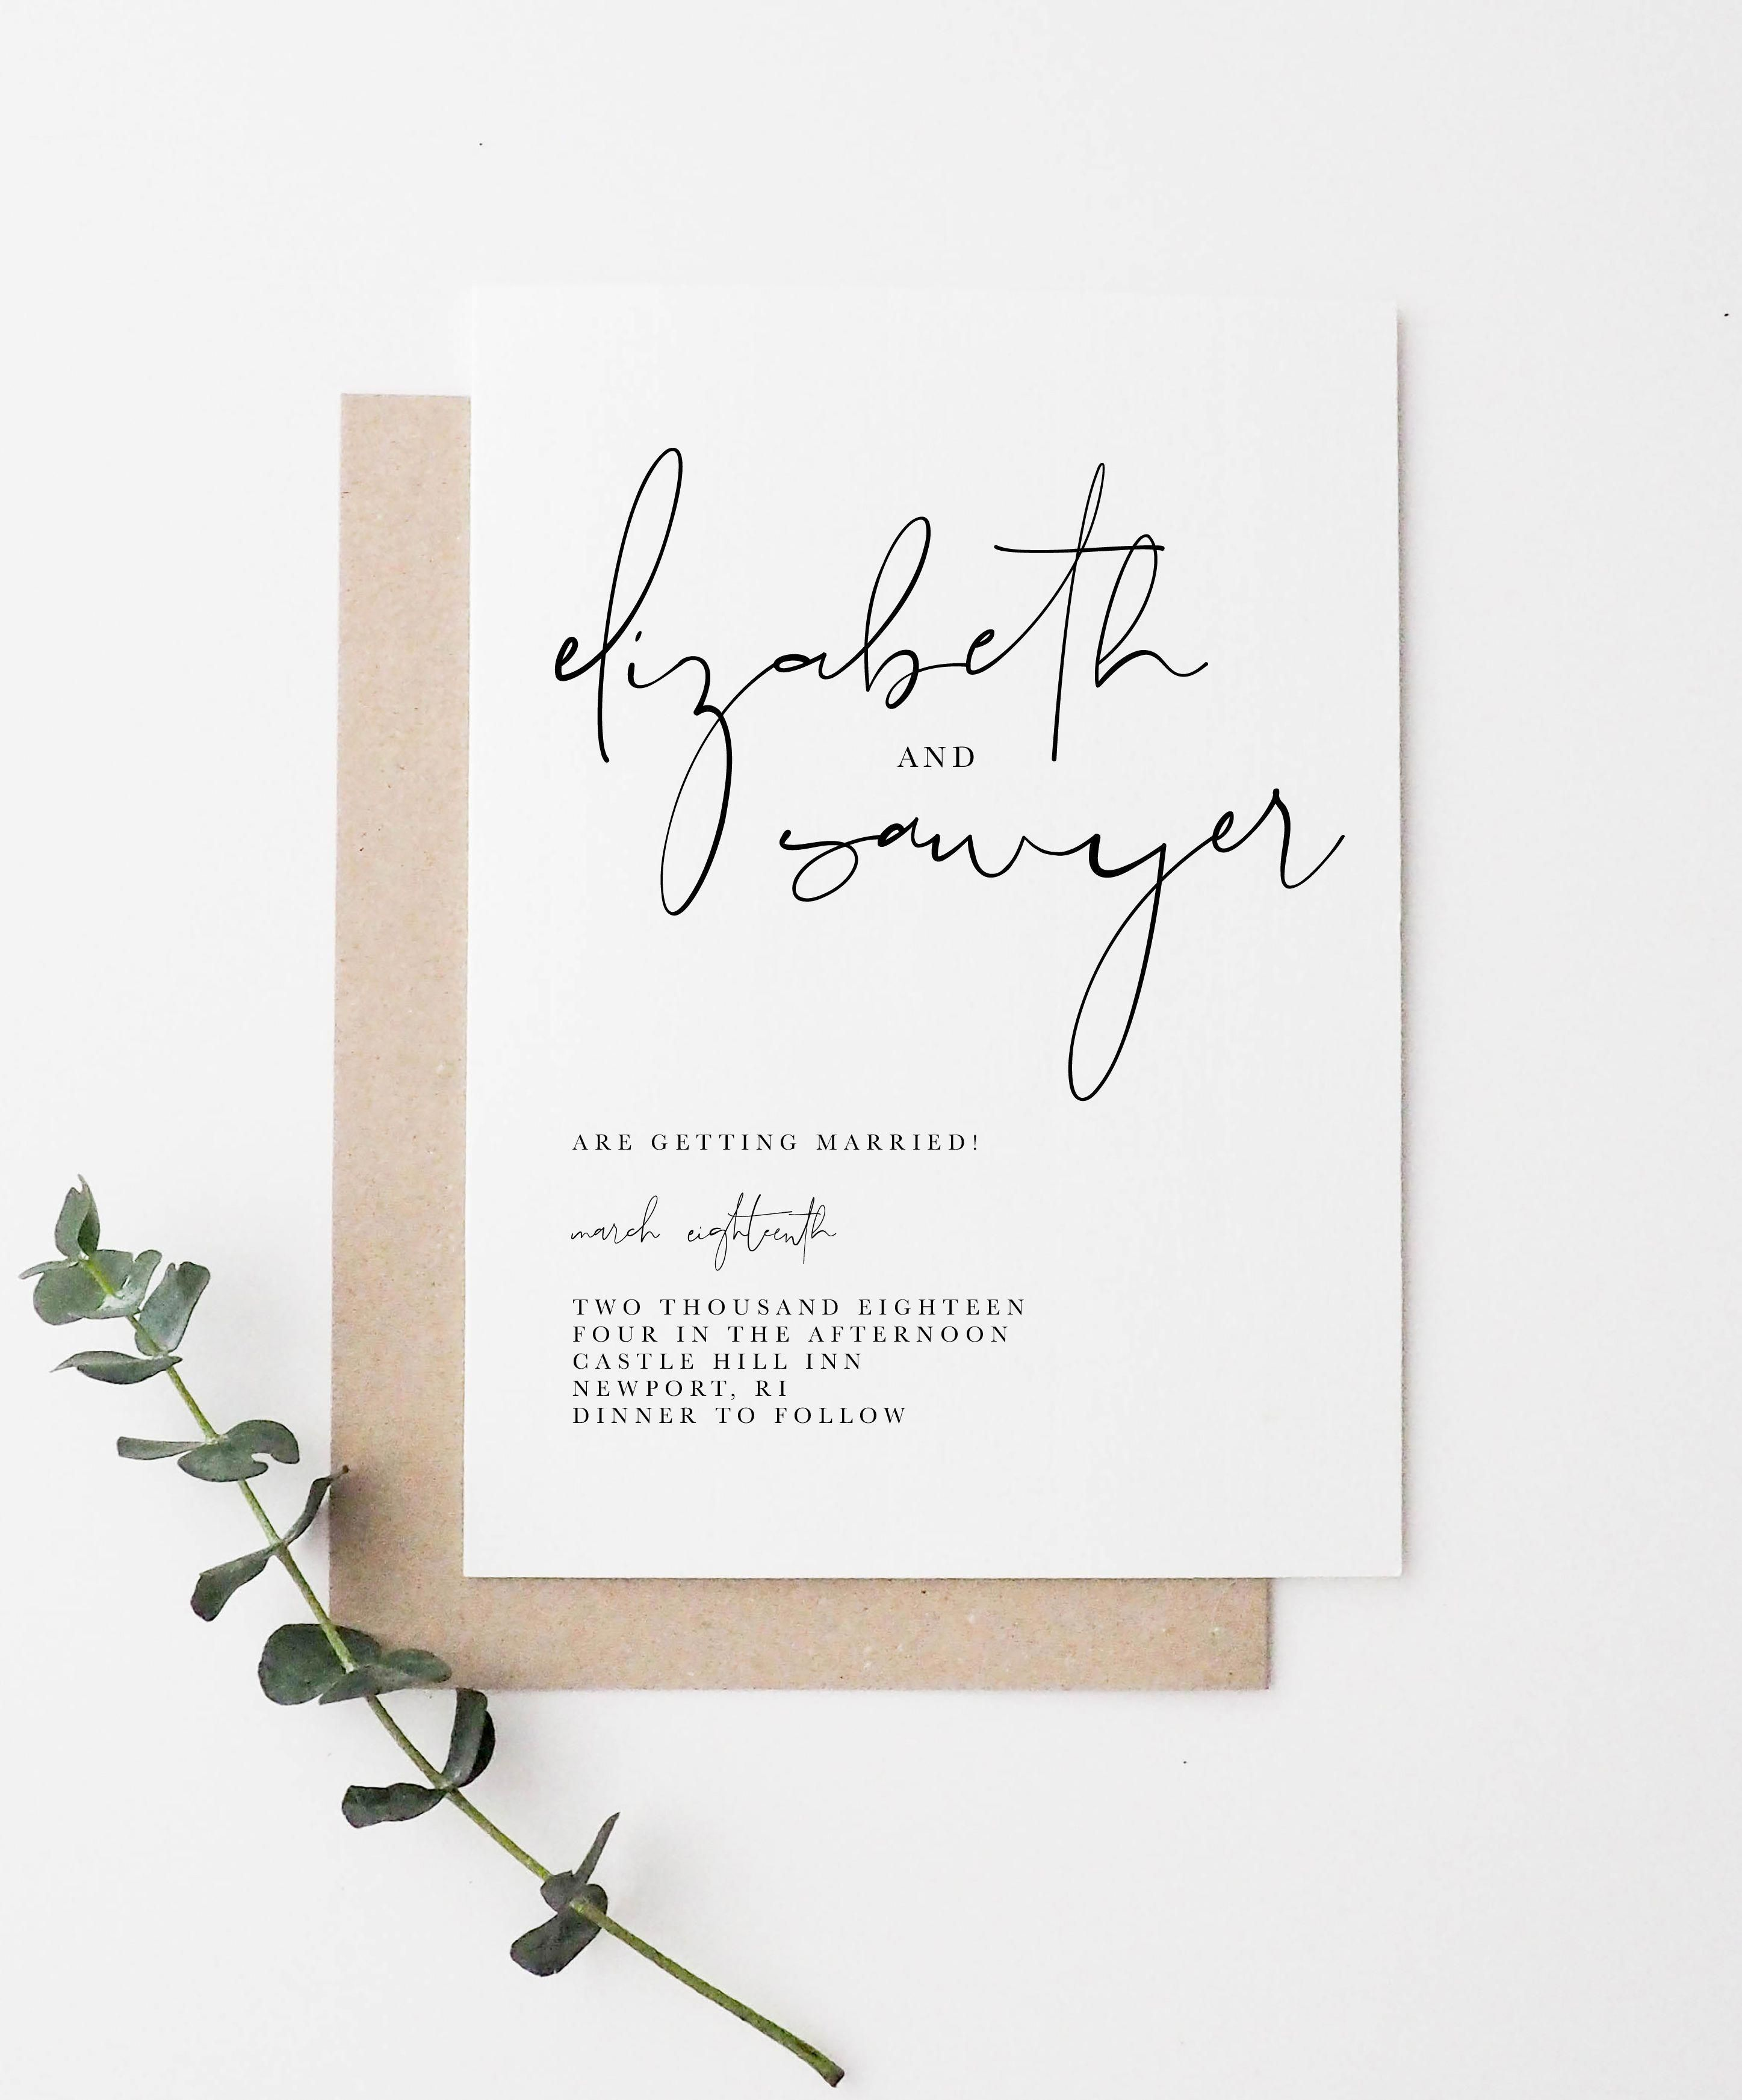 Many Wedding Invite Companies Can Provide A Selection Of